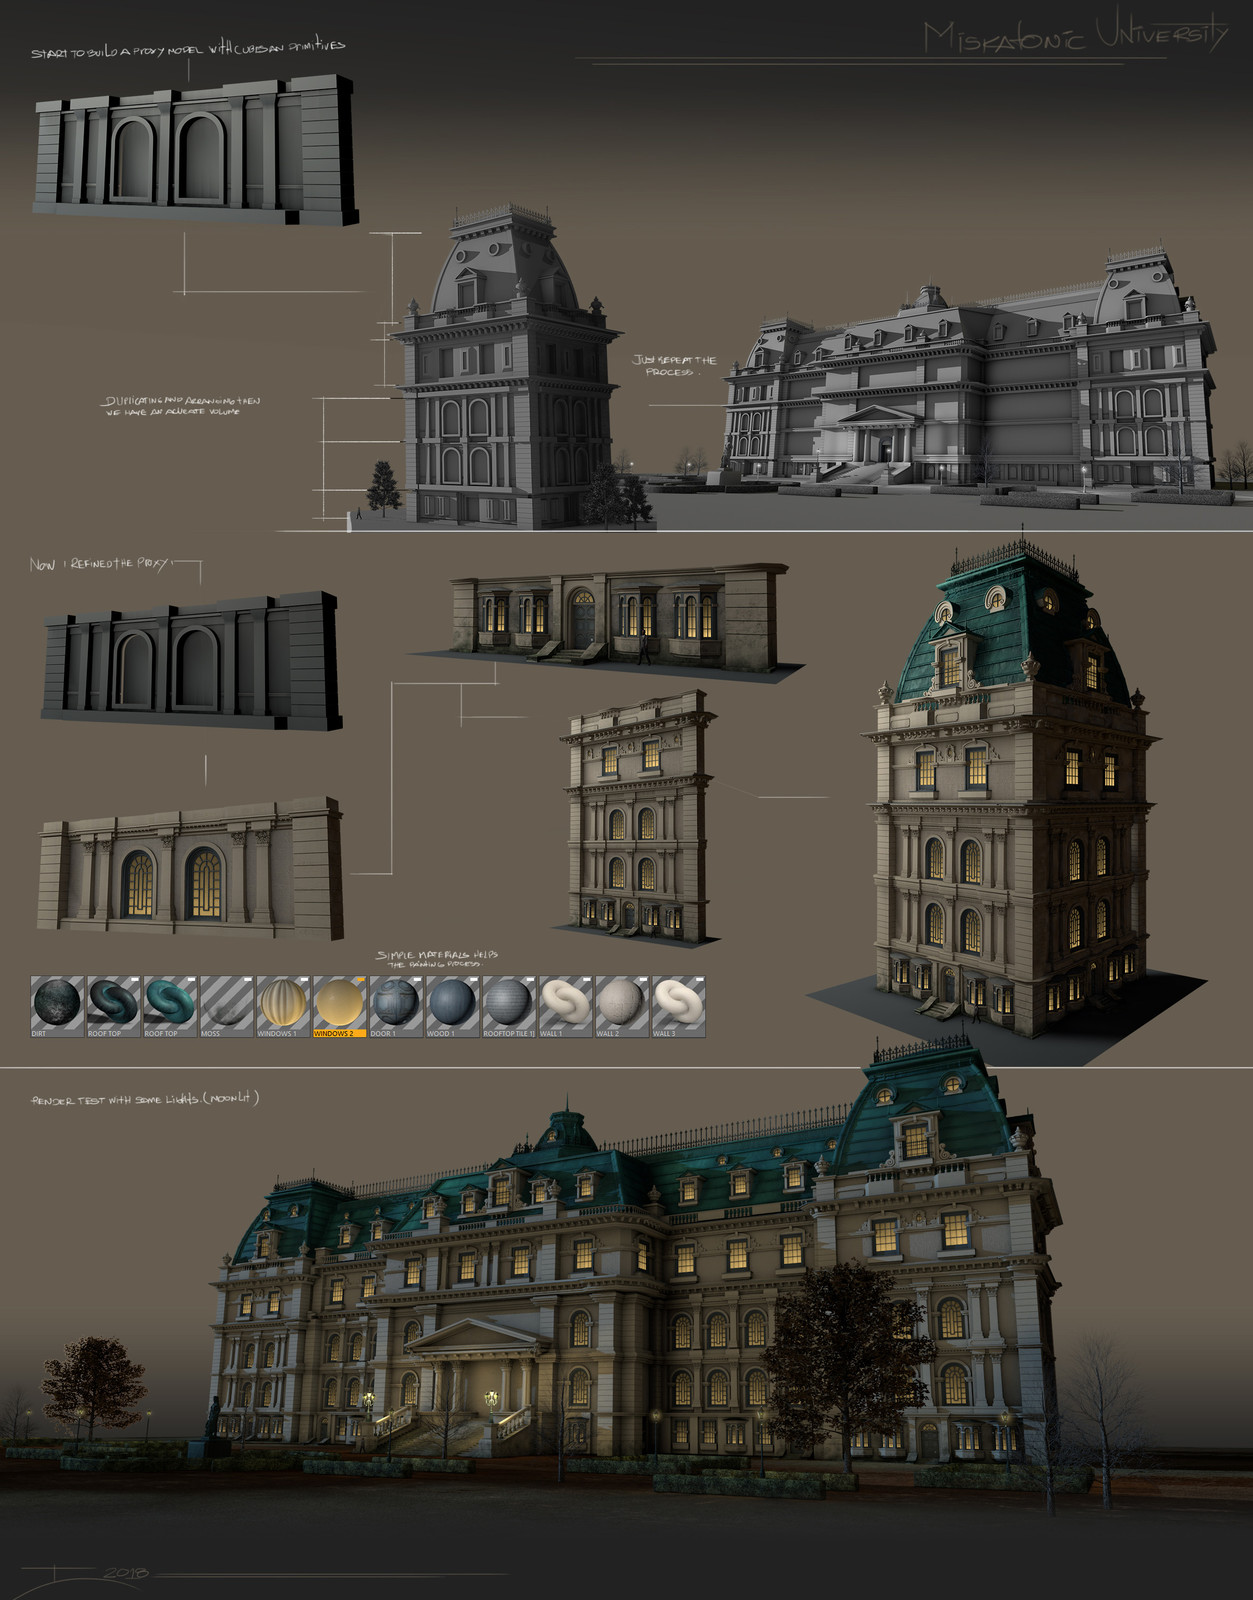 A bit of the modeling / texturing process, to generate passes and compose than into photoshop.